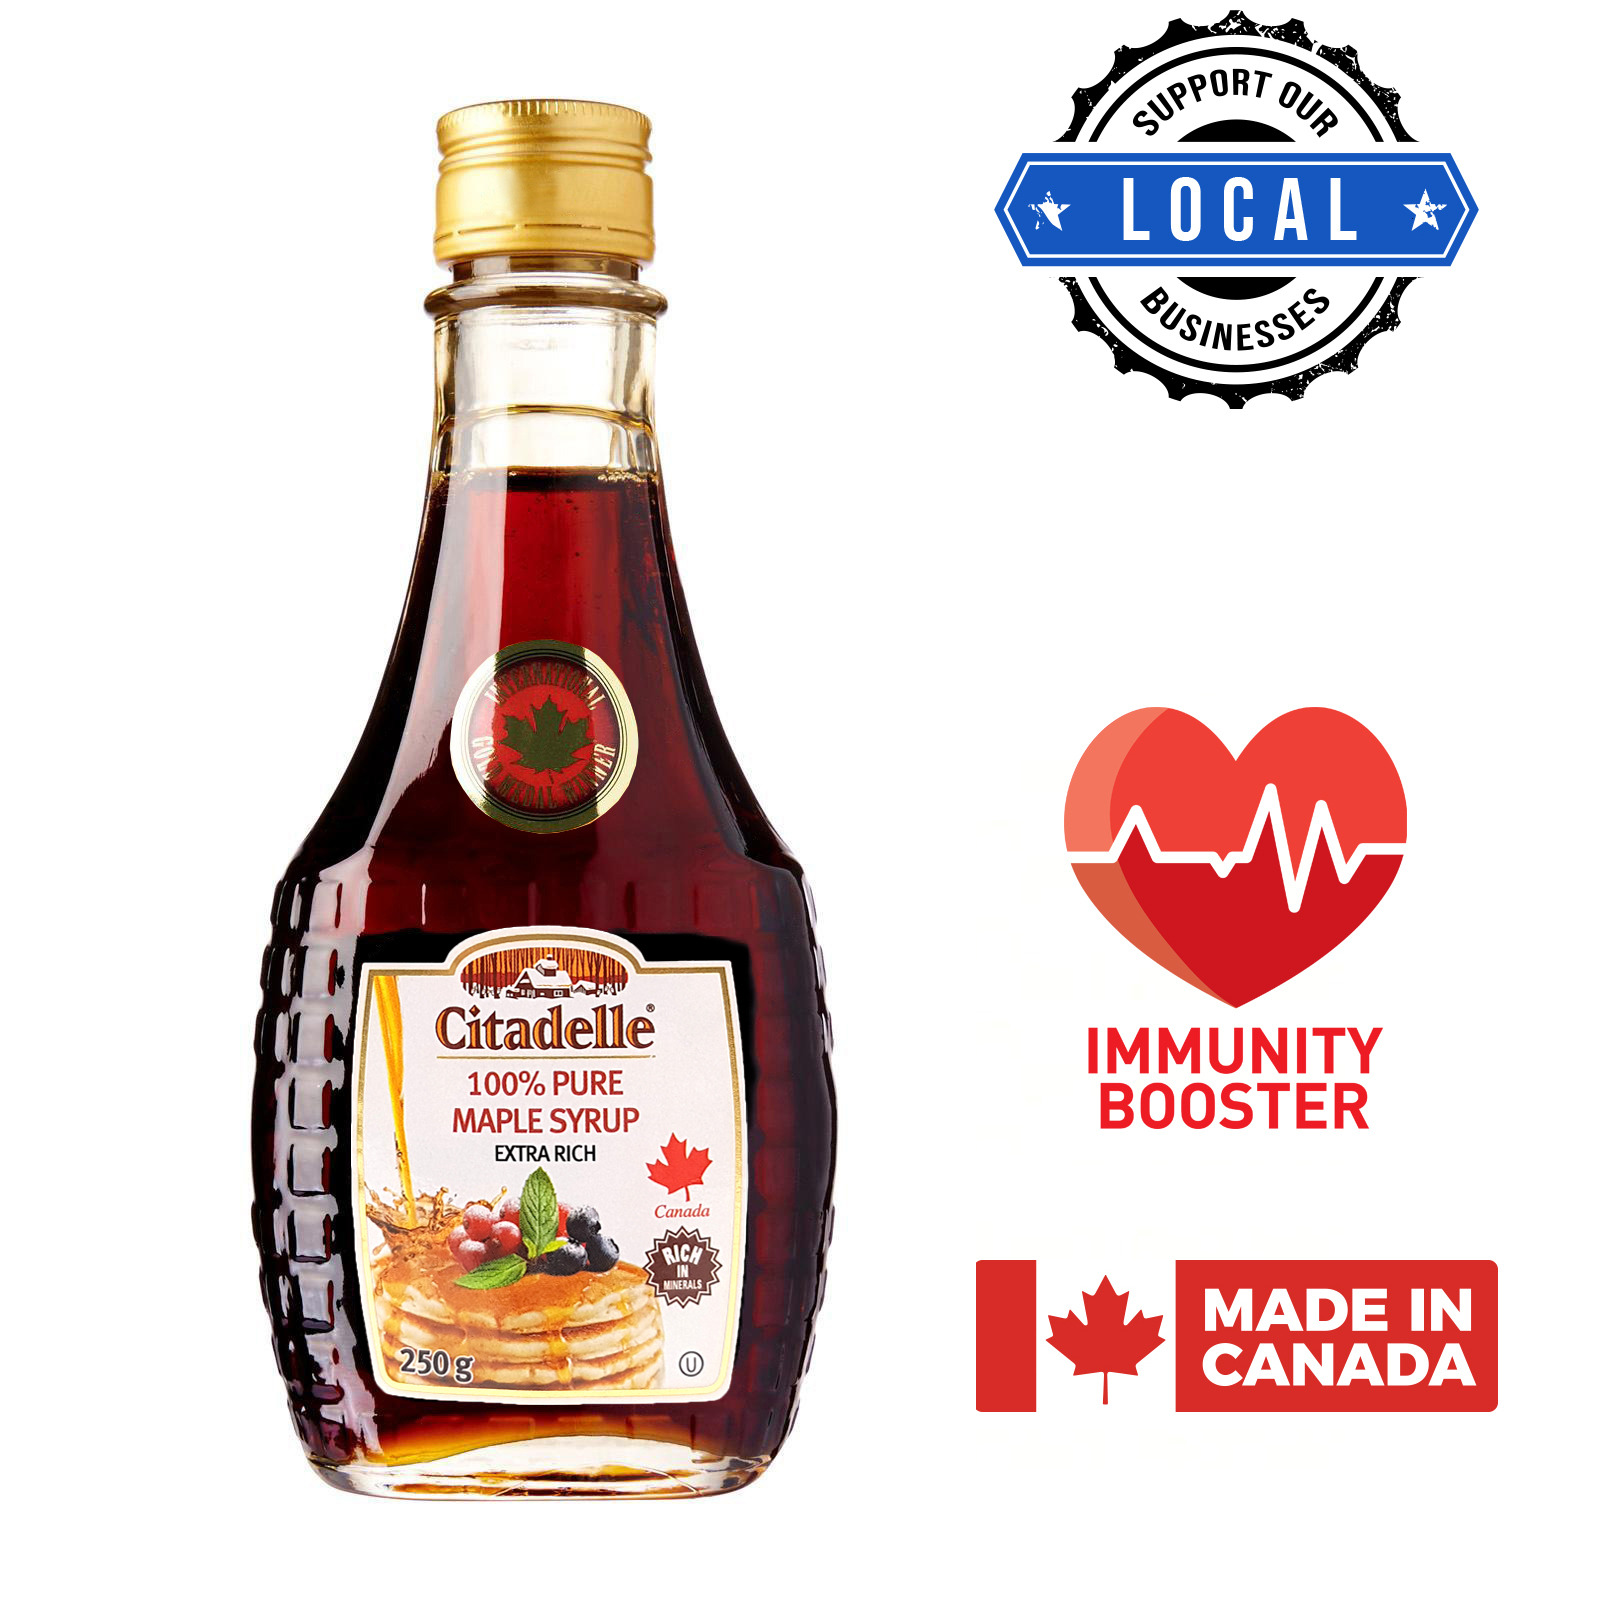 Citadelle - 100% Pure Canadian Maple Syrup